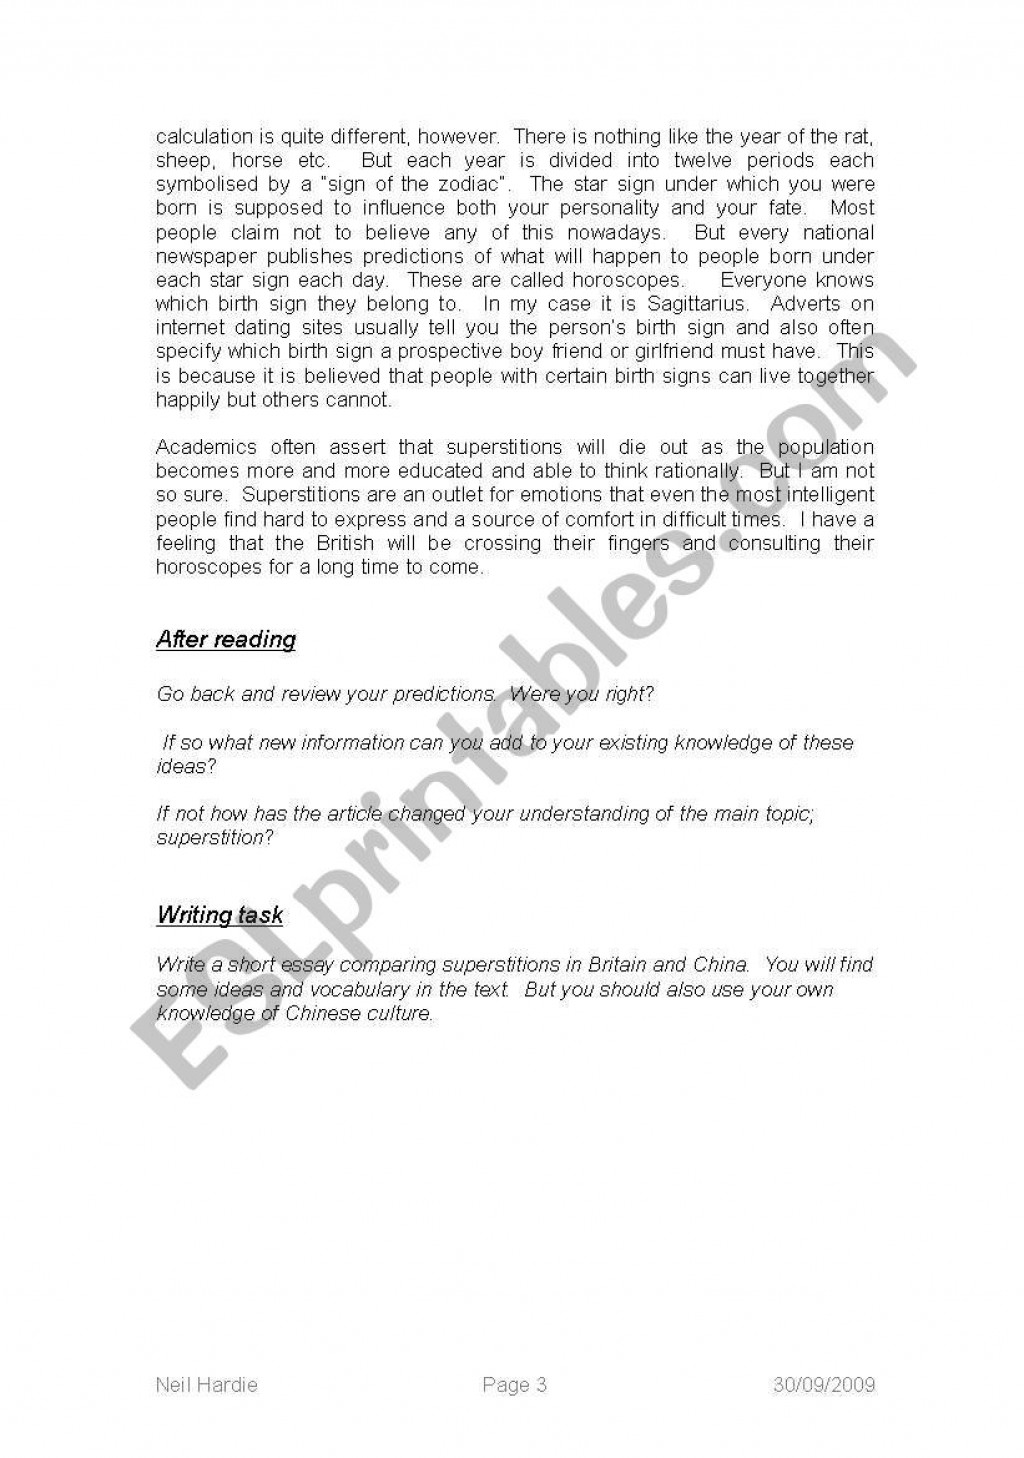 010 294876 3 British Superstition Essay Example Stirring Culture Chinese Introduction Organizational Questions Clash Examples Large